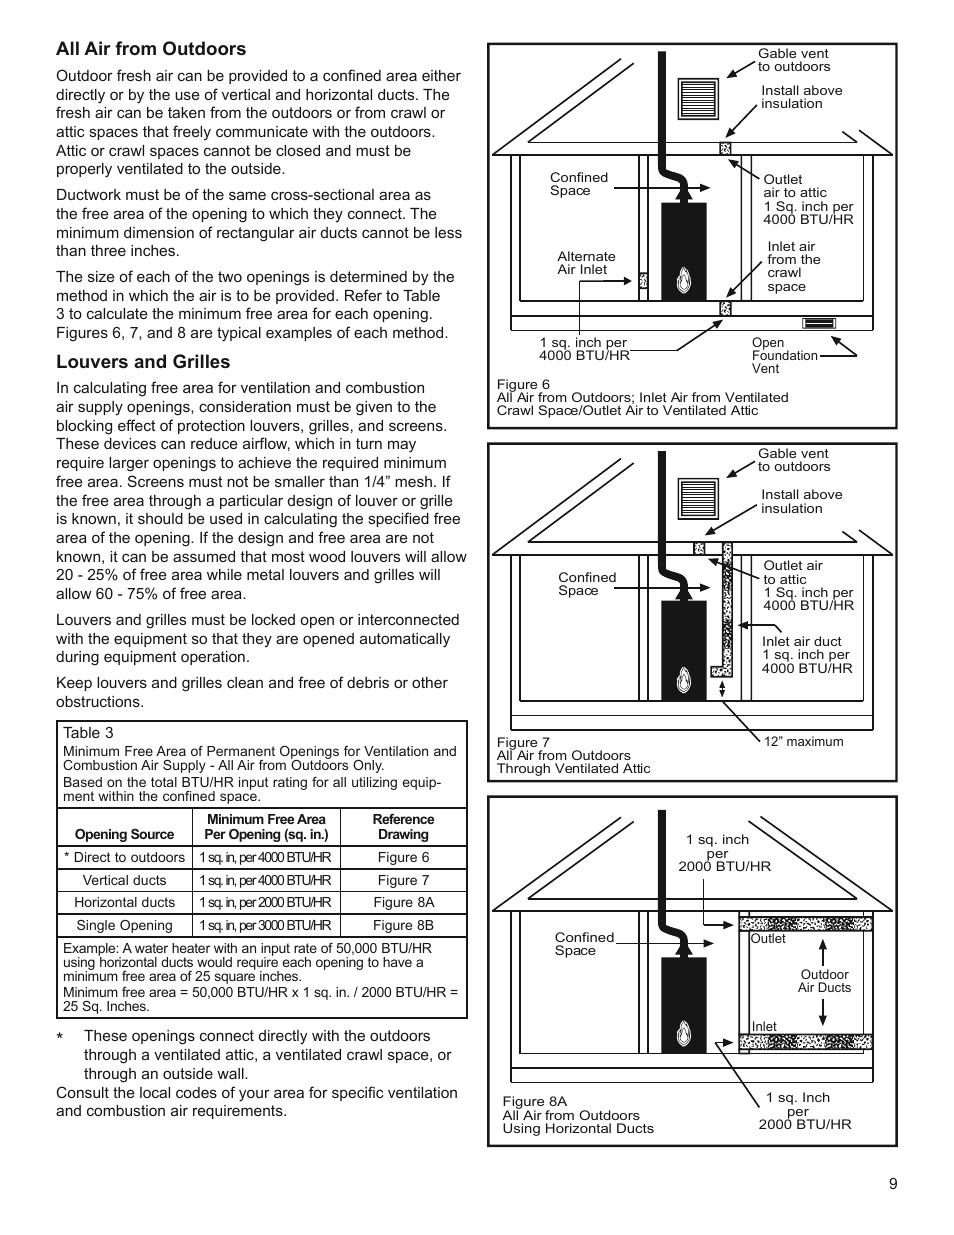 Whirlpool gas water heater manual wiring diagram database all air from outdoors louvers and grilles whirlpool residential rh manualsdir com whirlpool gas water heater troubleshooting whirlpool natural gas water ccuart Image collections